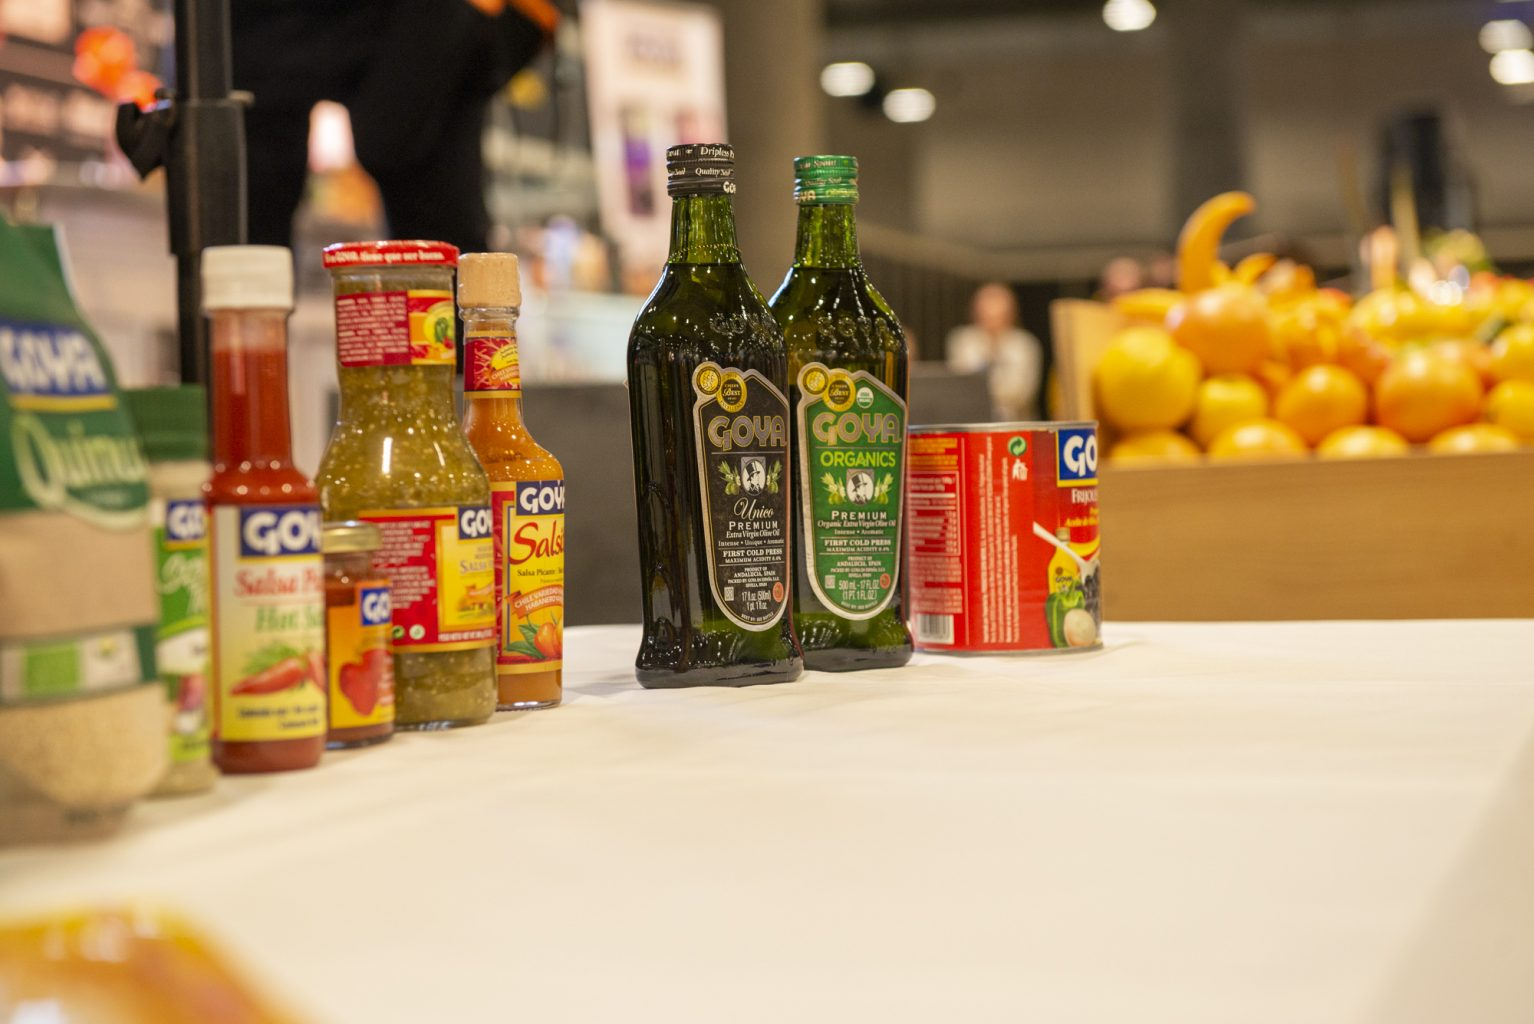 Mix of Goya products for the showcooking